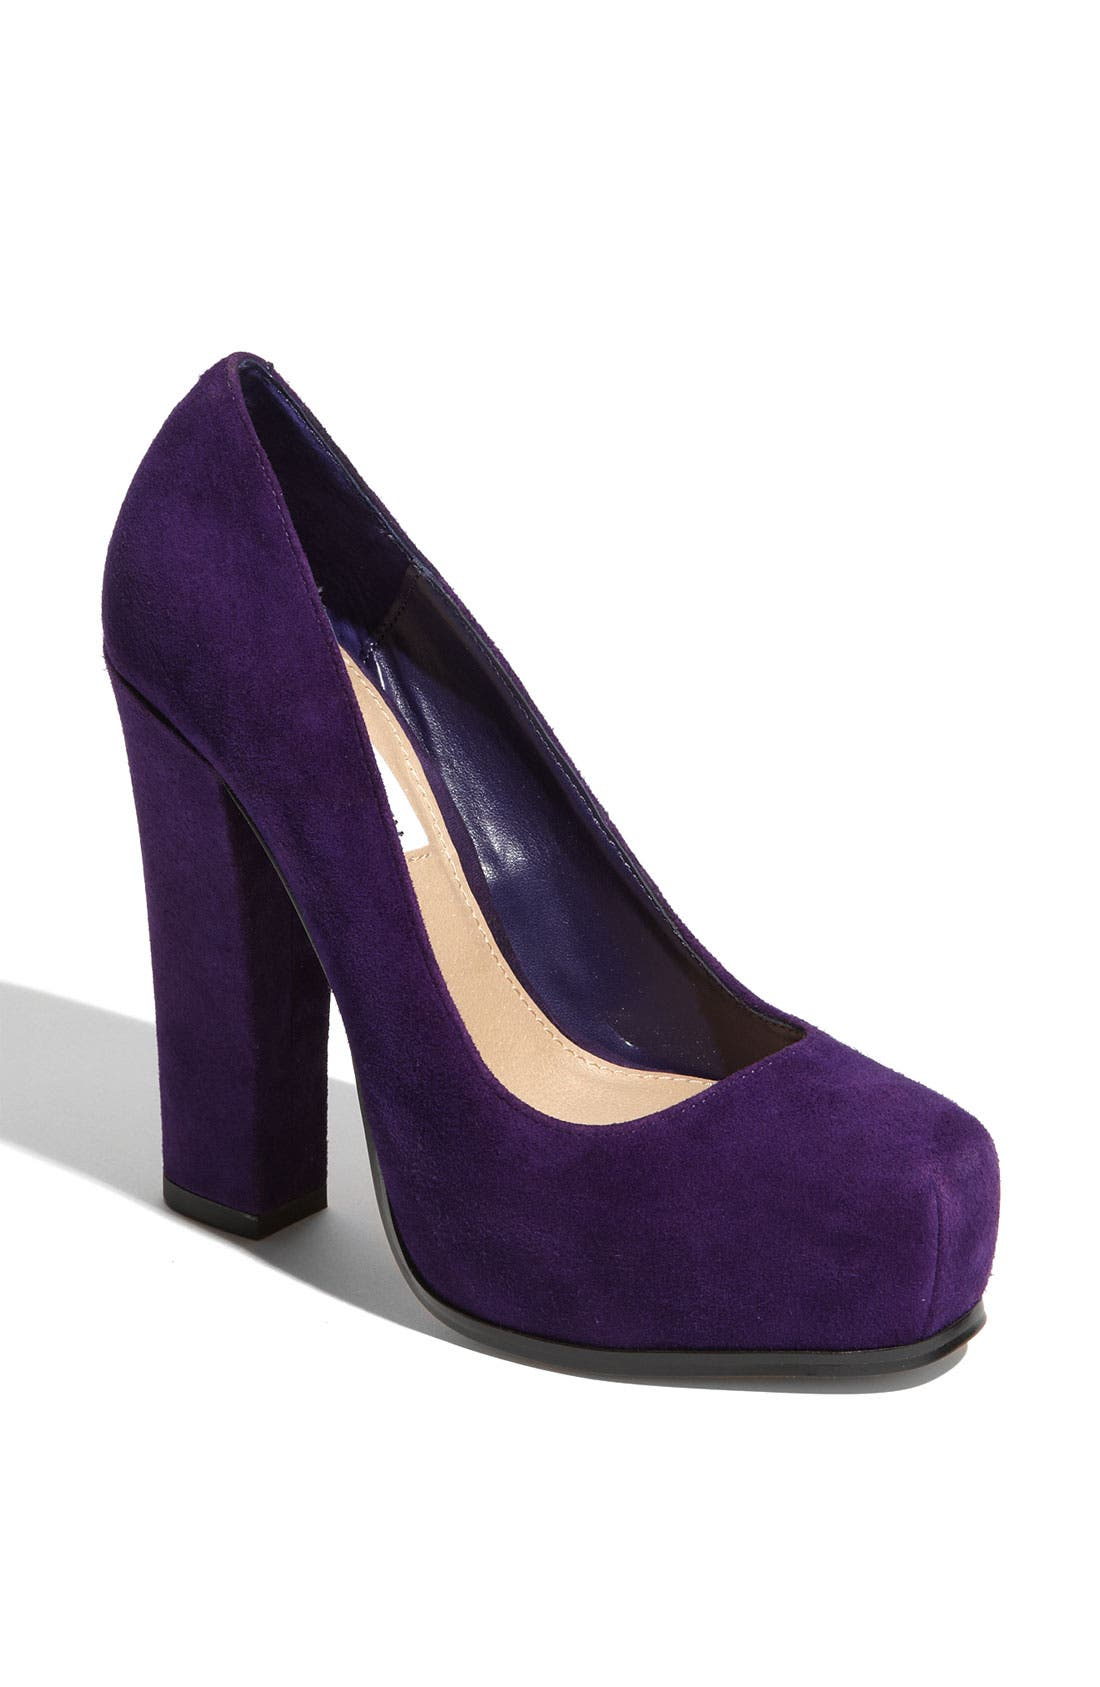 Alternate Image 1 Selected - Steve Madden 'Sarrina' Pump